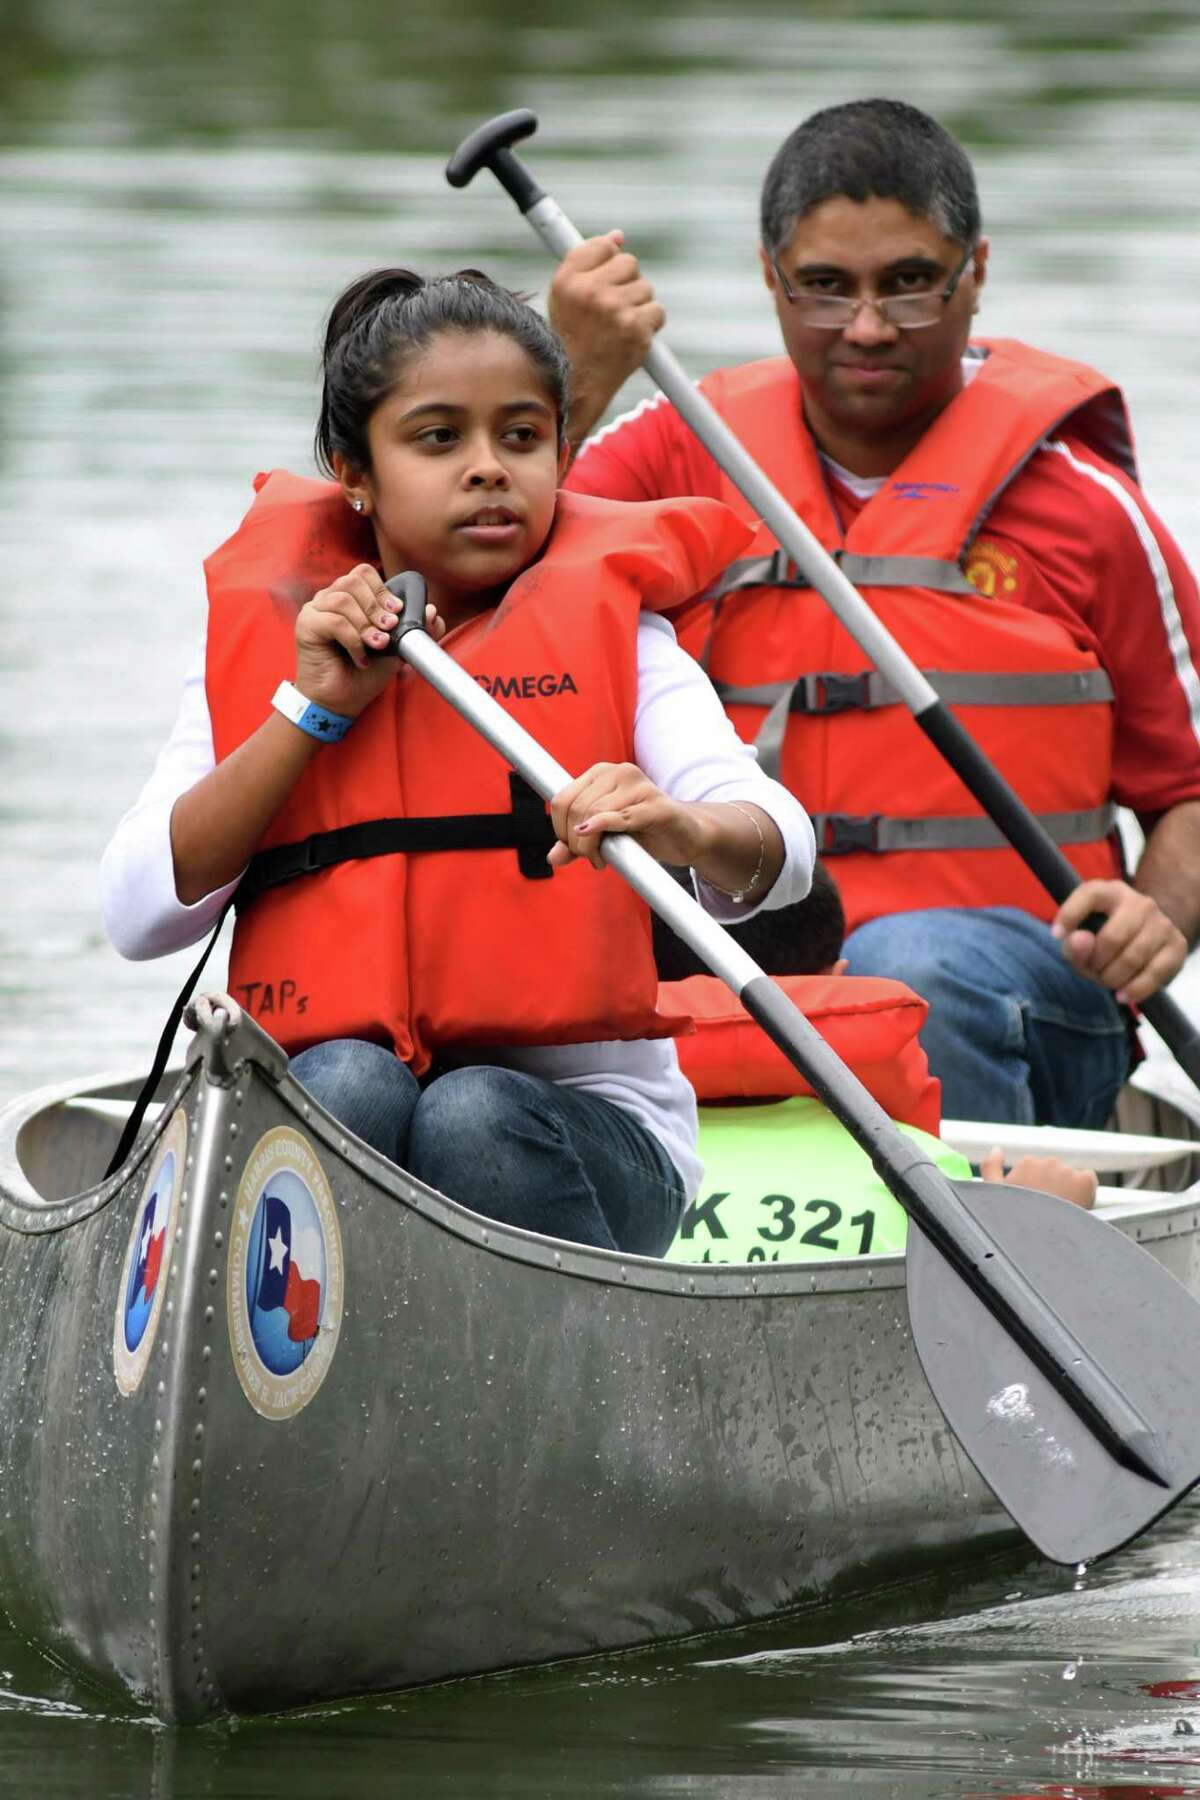 Harris County Pct. 4 will host a canoeing adventure at Burroughs Park in Tomball on Jan. 28. Shown here: Soha Siddiq, 11, left, a 6th grader at Schindewolf Middle School, her dad Omer, of Spring, and brother Zain (hidden), 7, a 2nd grader at Mueller Elem., canoe their way across Marshall Lake during the first Harris County Precinct 4 Civic Adventure Day held at Kickerillo-Mischer Preserve in the Cypress Creek area on Sept. 29, 2018.